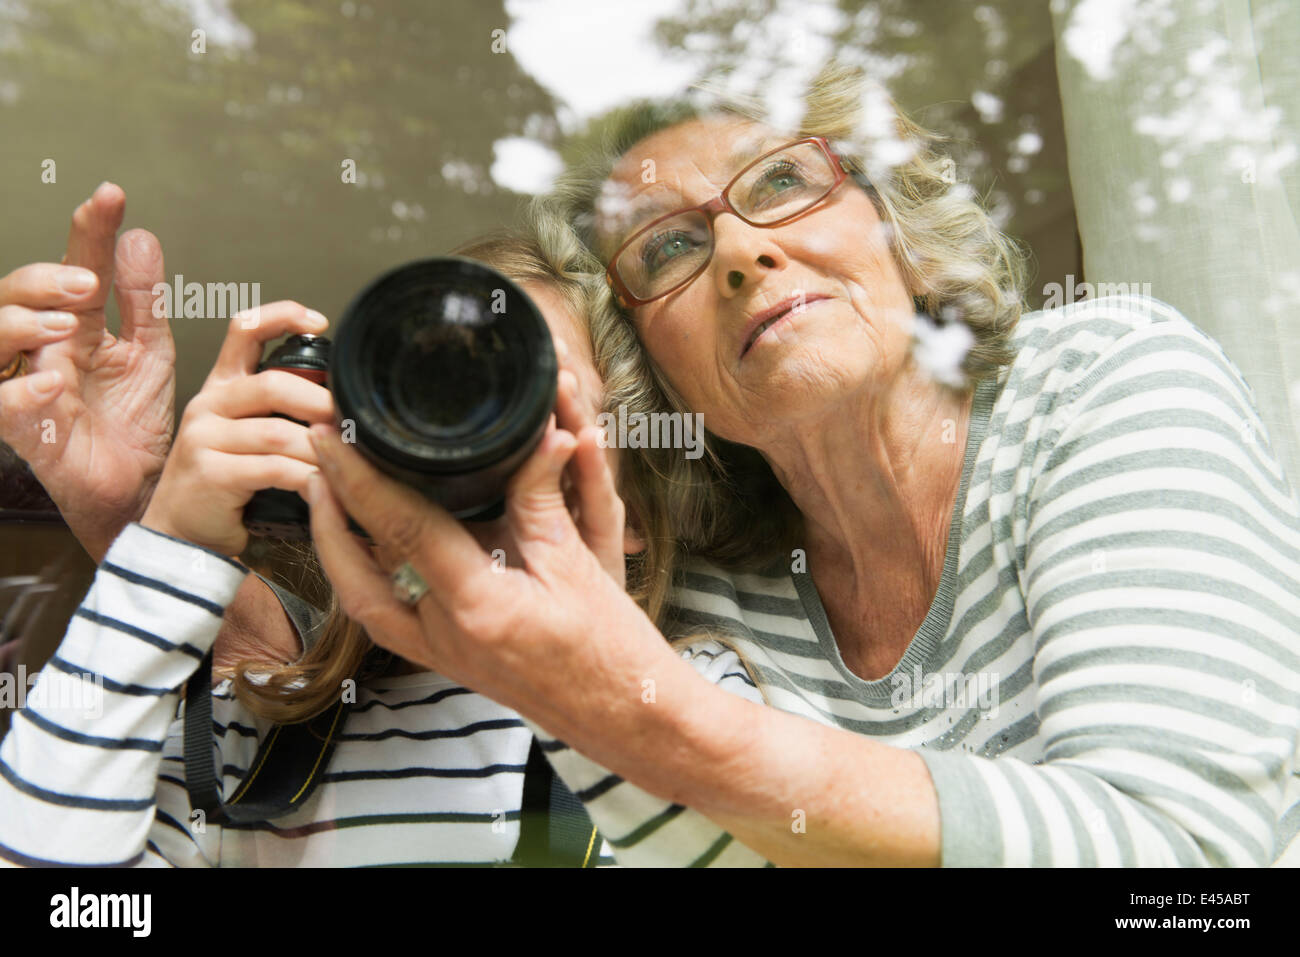 Grandmother teaching granddaughter camera usage Stock Photo